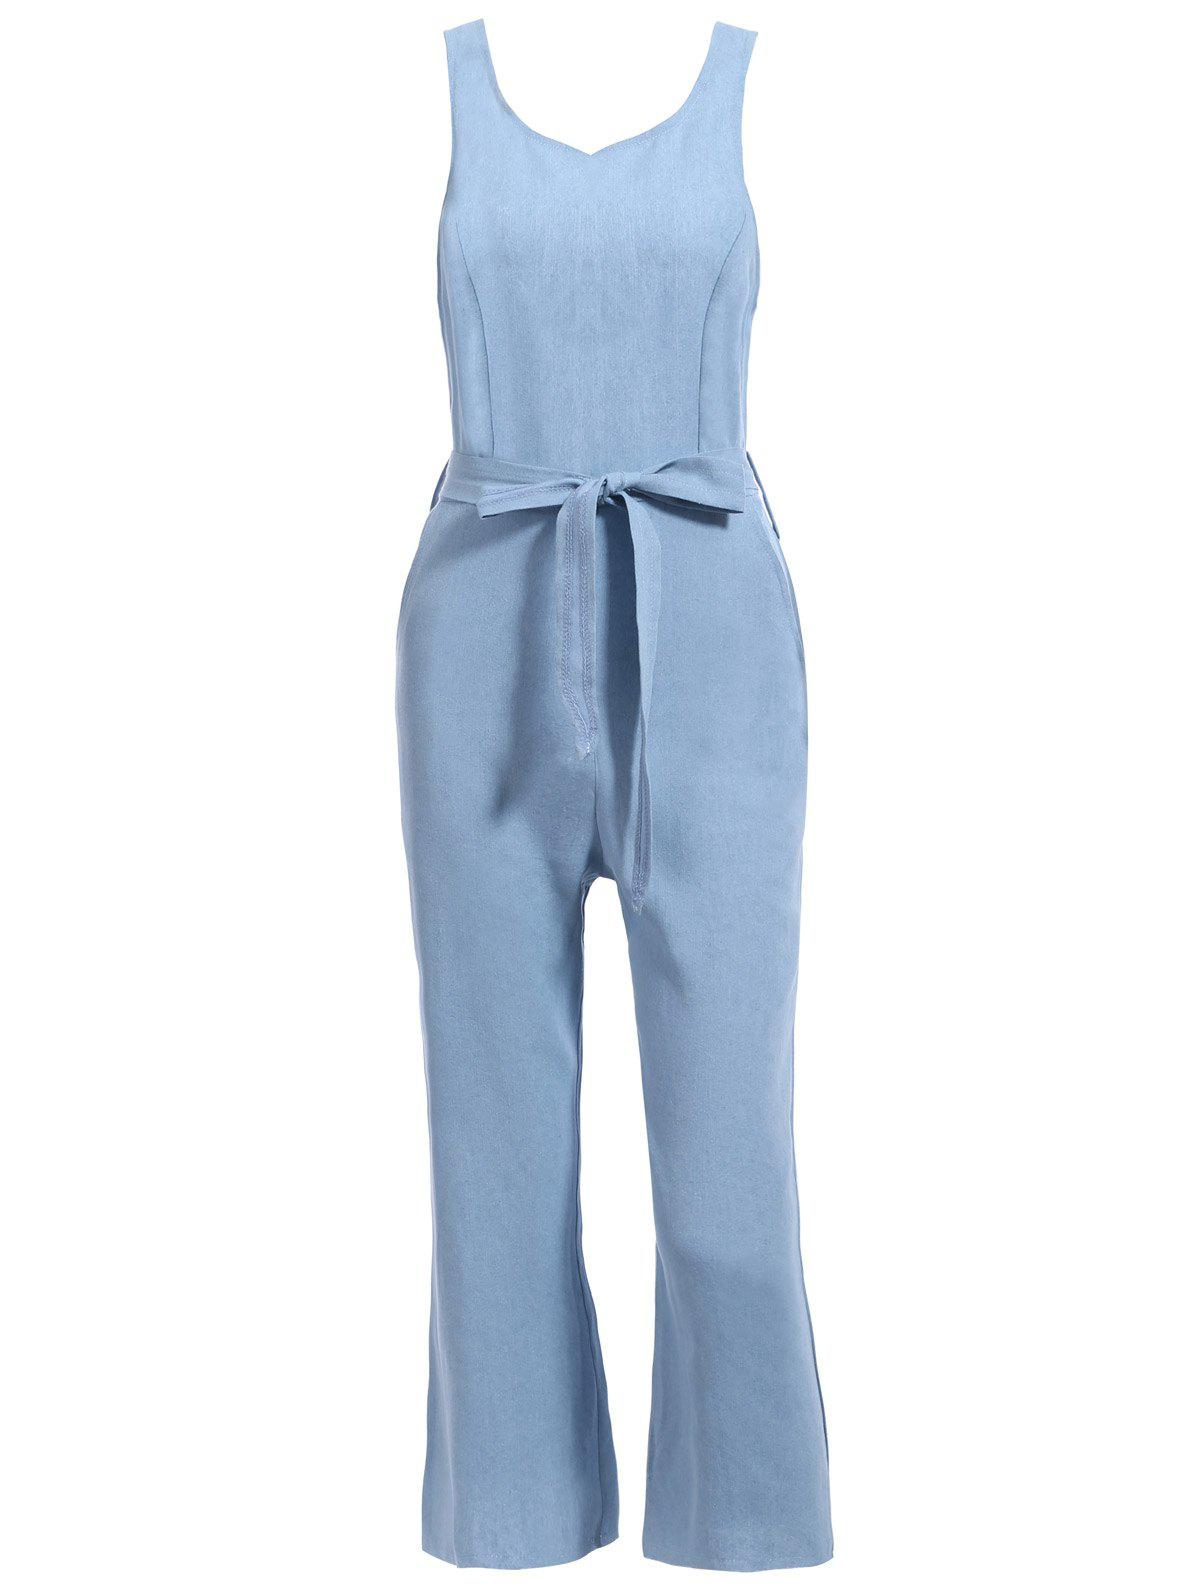 Fashionable jumpsuits for women 54